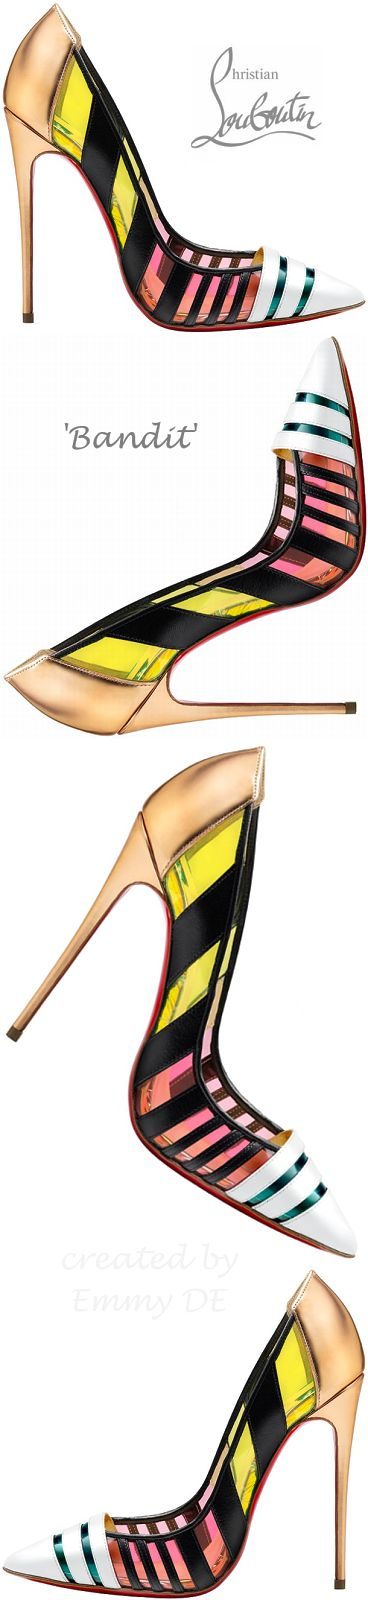 Brilliant Luxury by Emmy DE * Christian Louboutin 'Bandy' Spring 2015  | ko-te.com by @evatornado